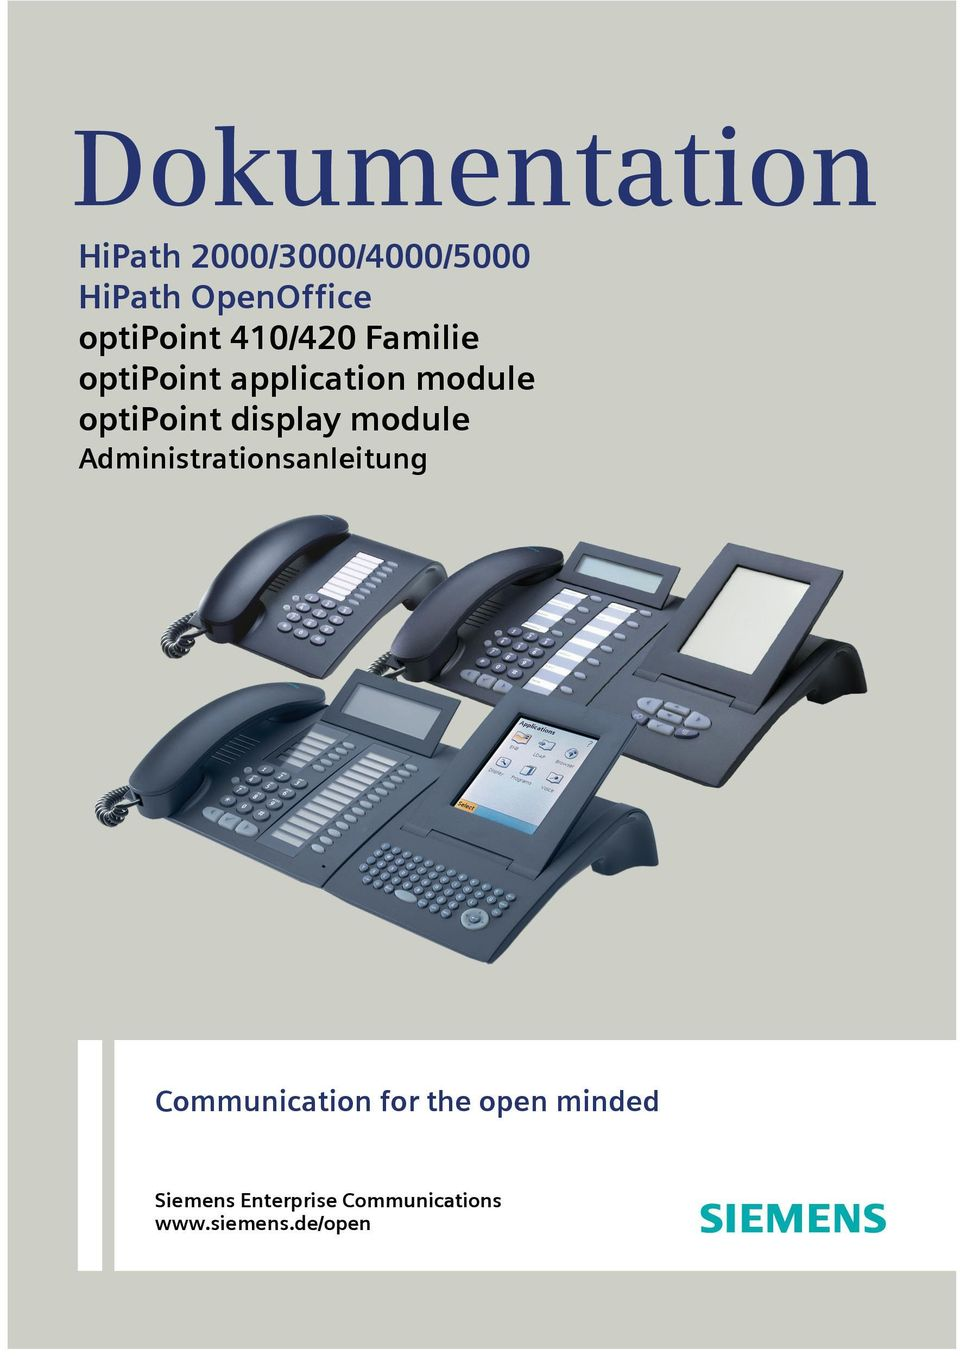 optipoint display module Administrationsanleitung